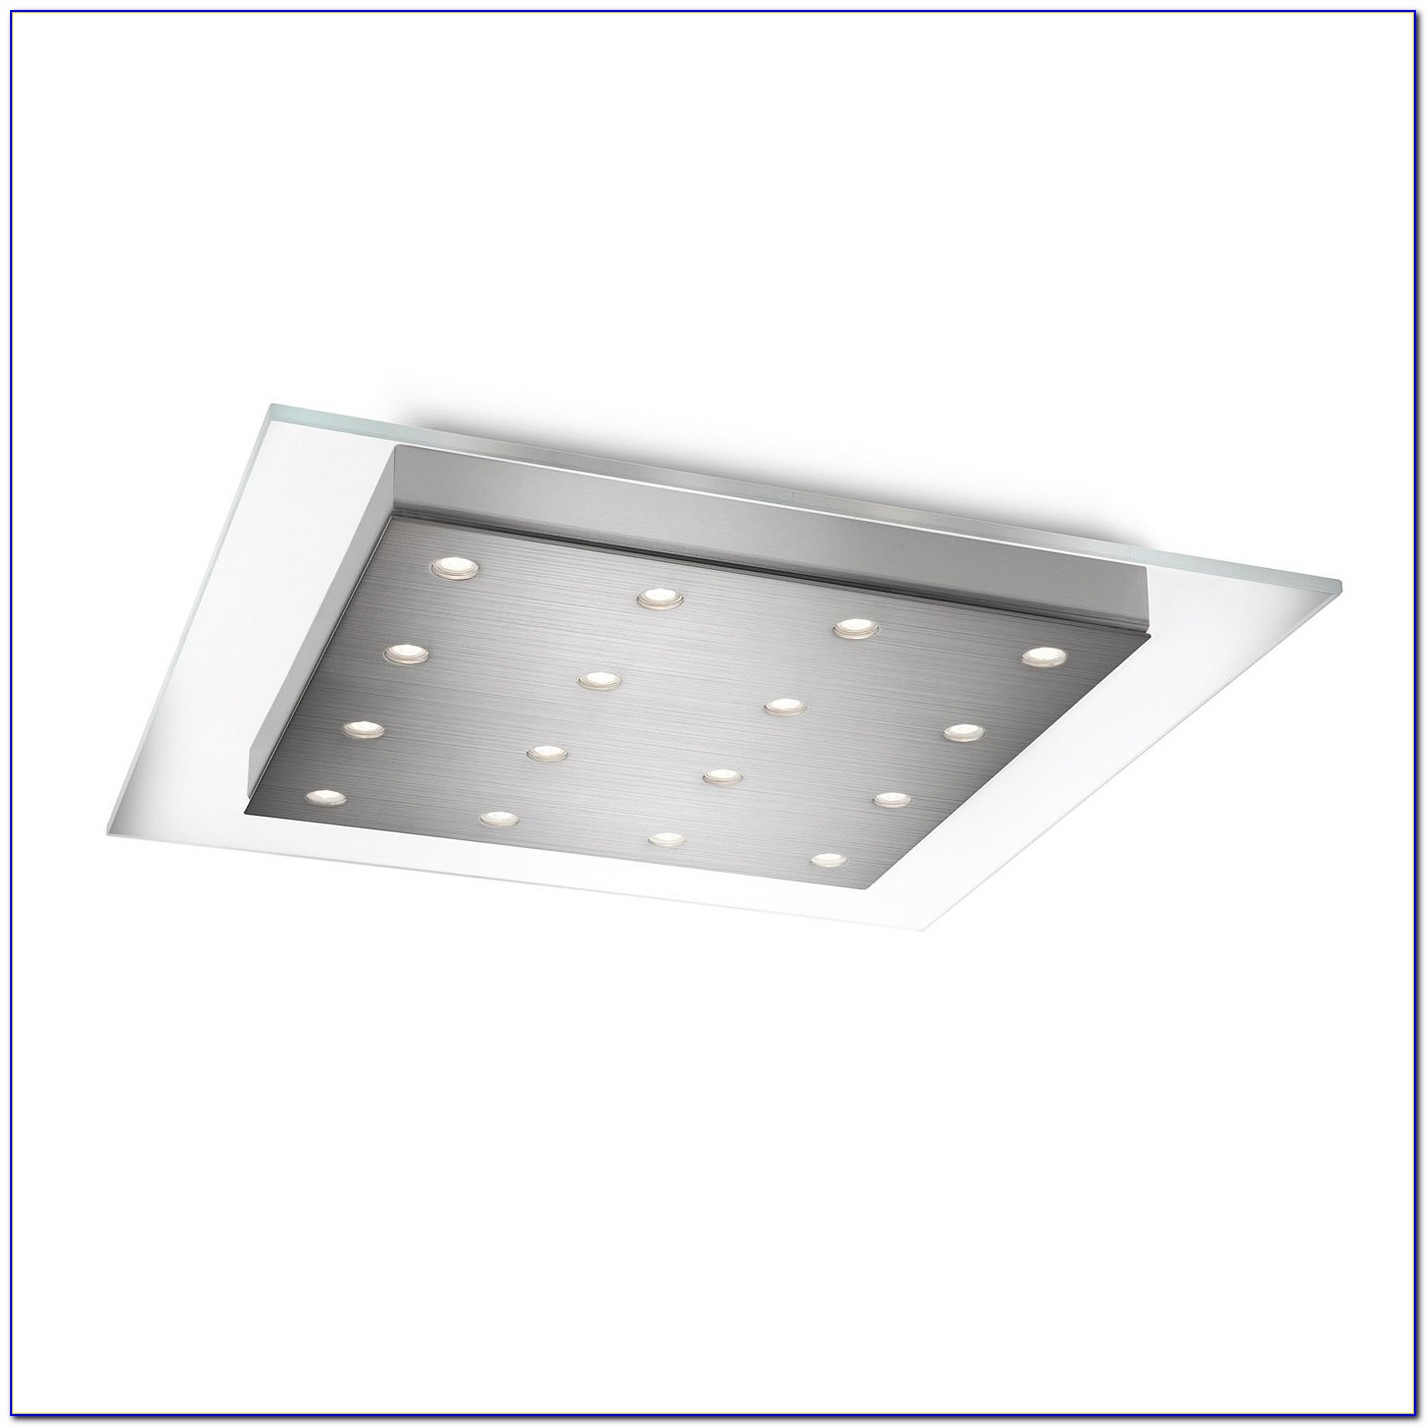 Ceiling Light Flush Mount Installation